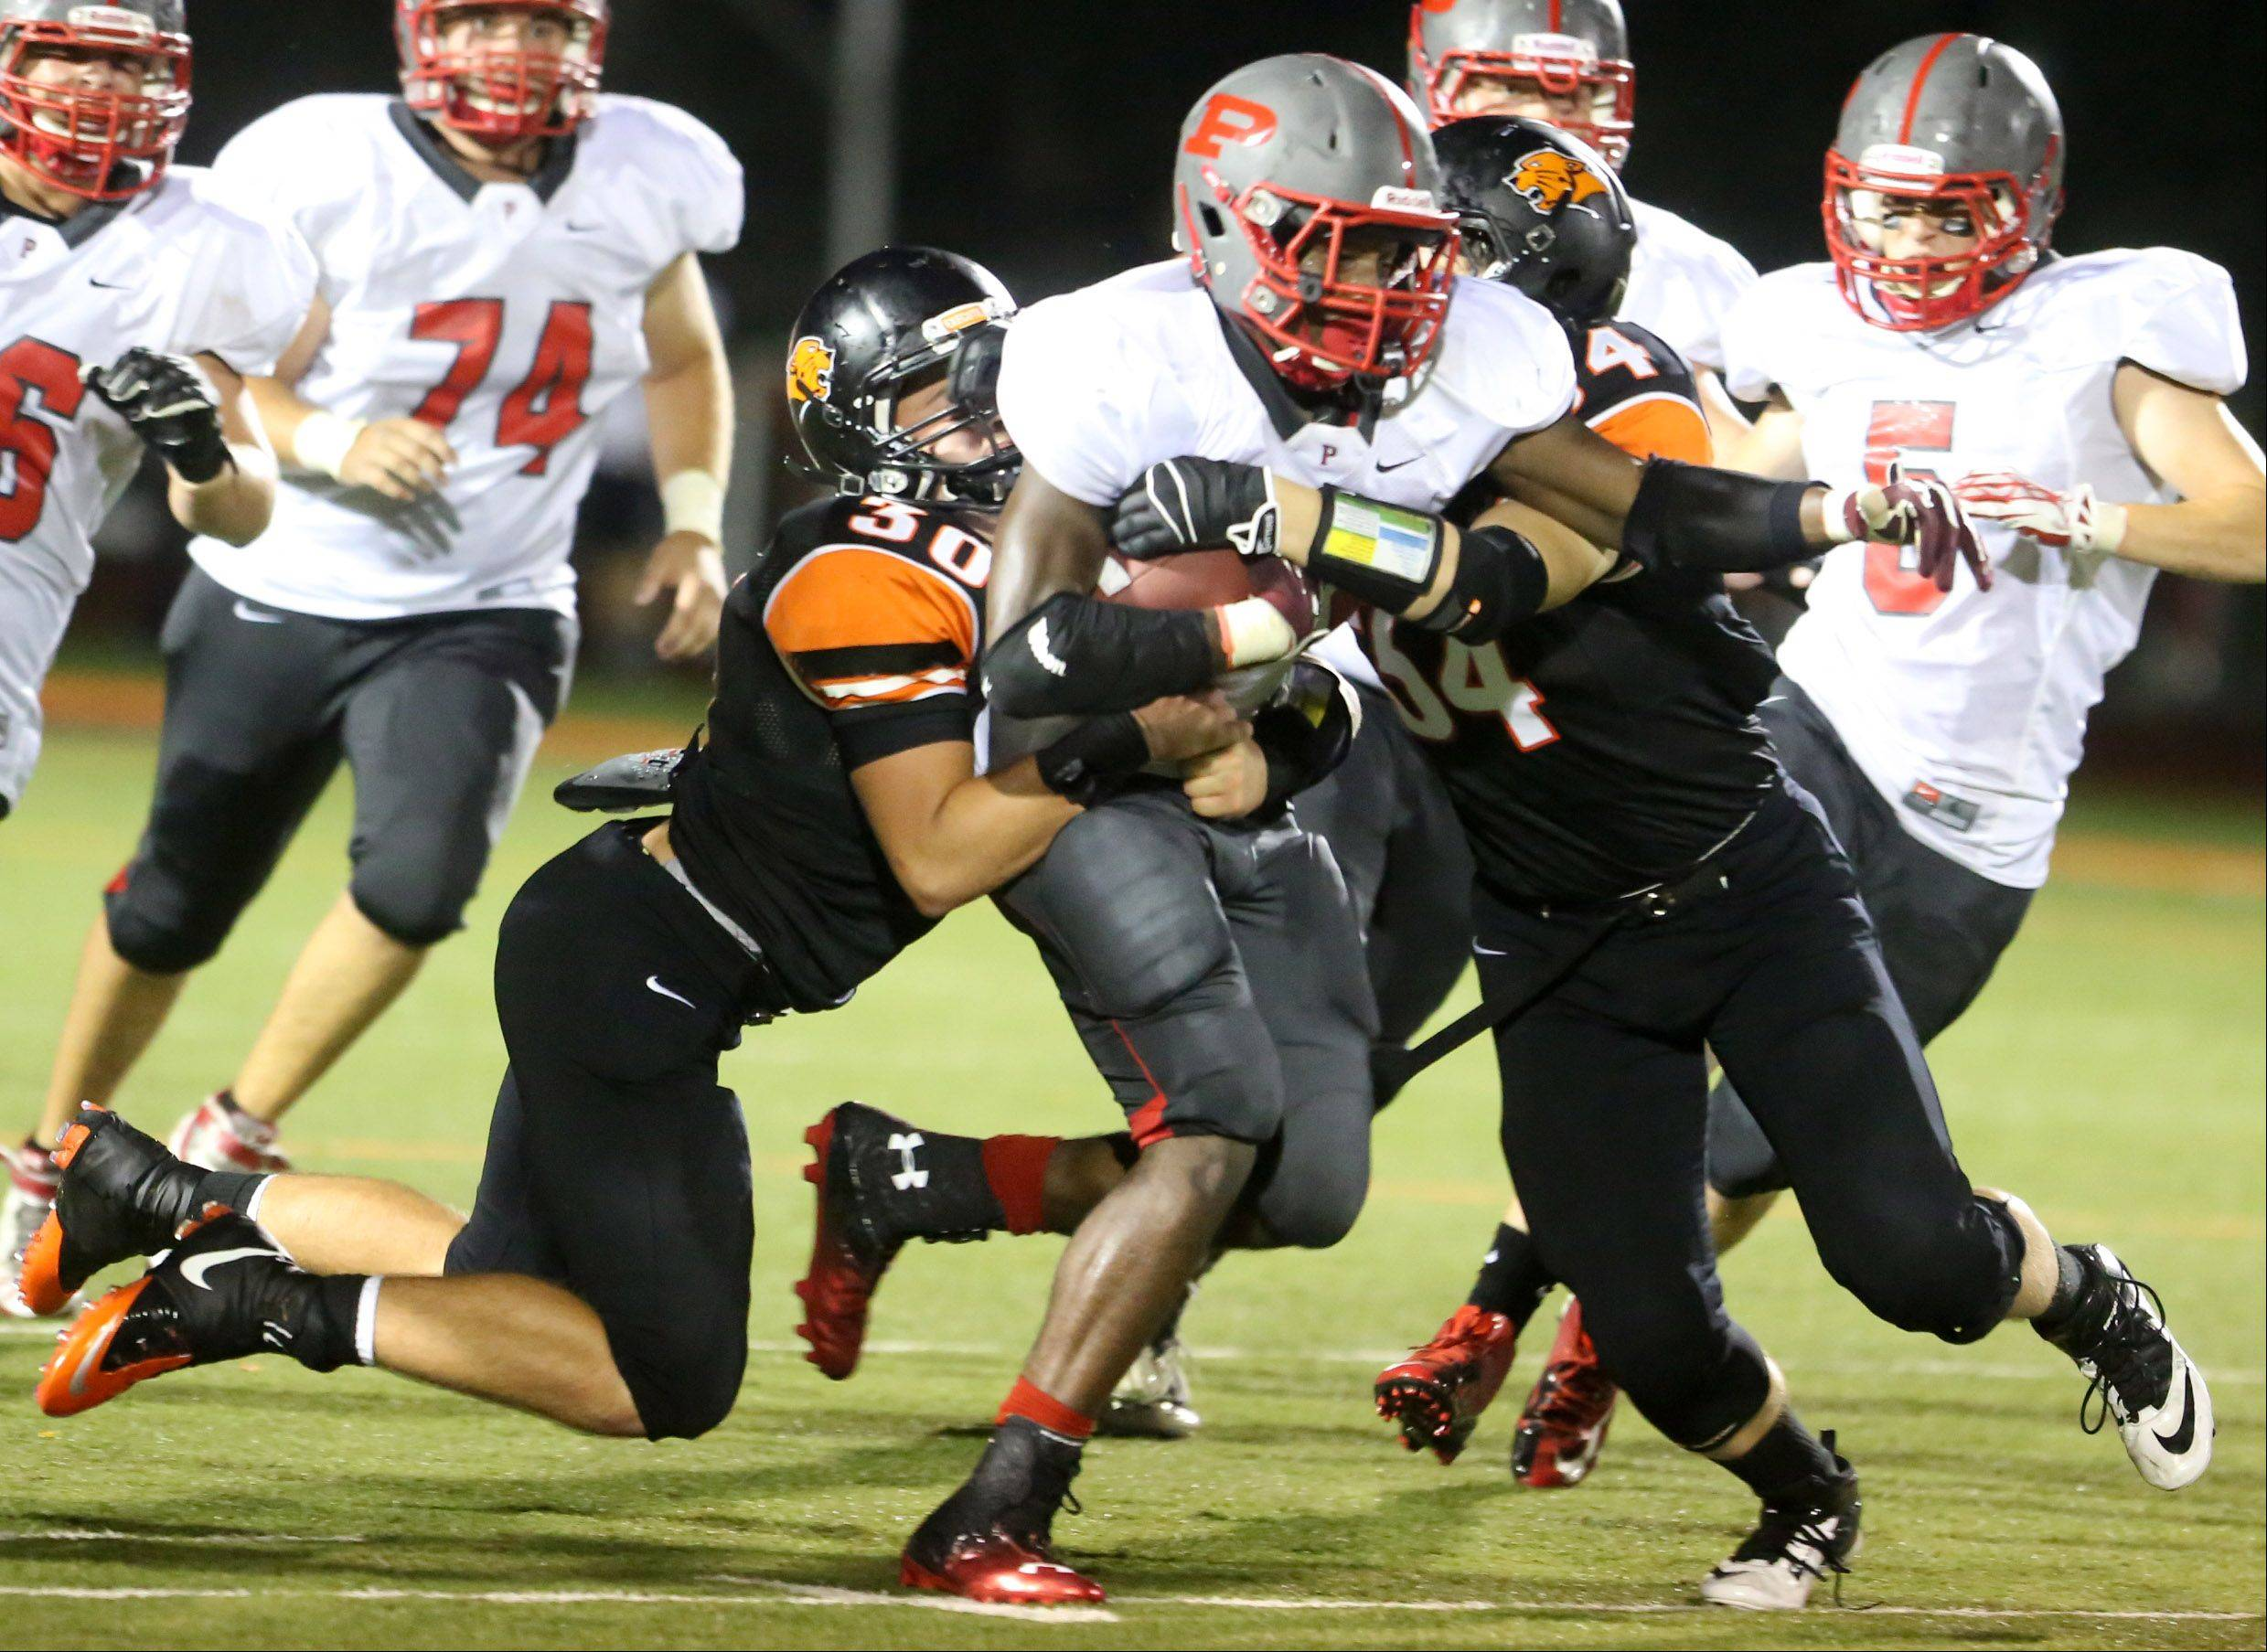 Palatine sports winning look at Libertyville